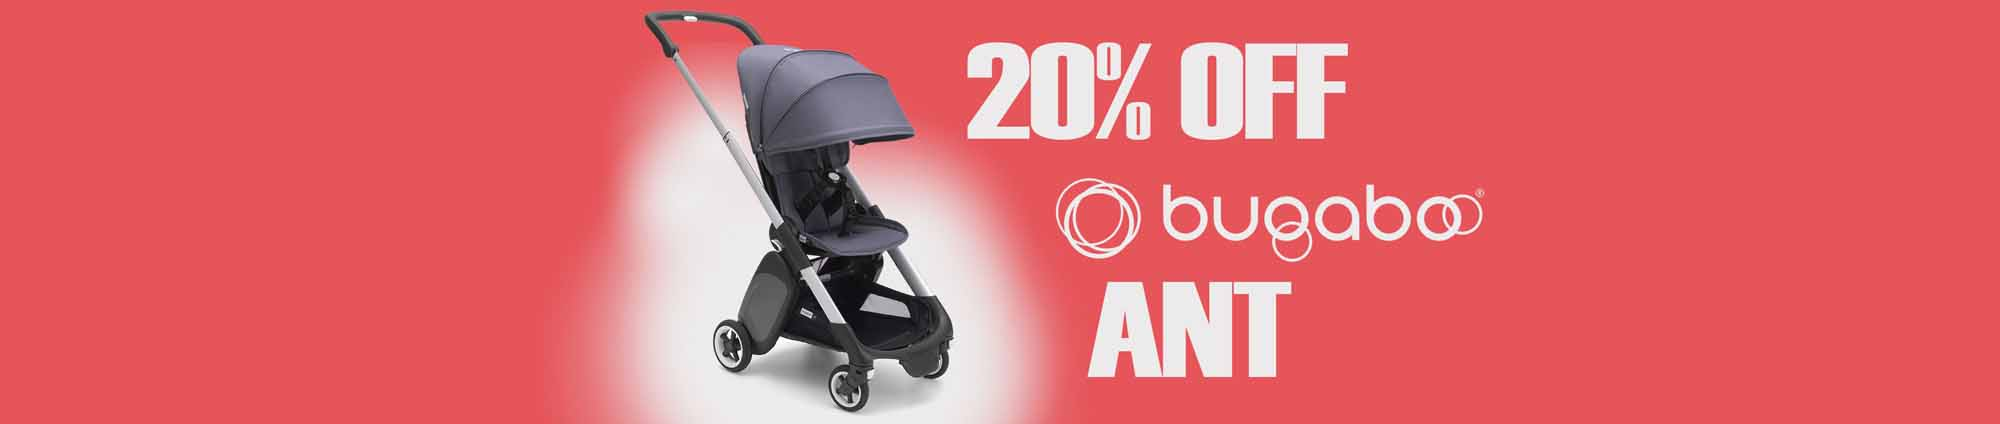 Bugaboo Ant Sale